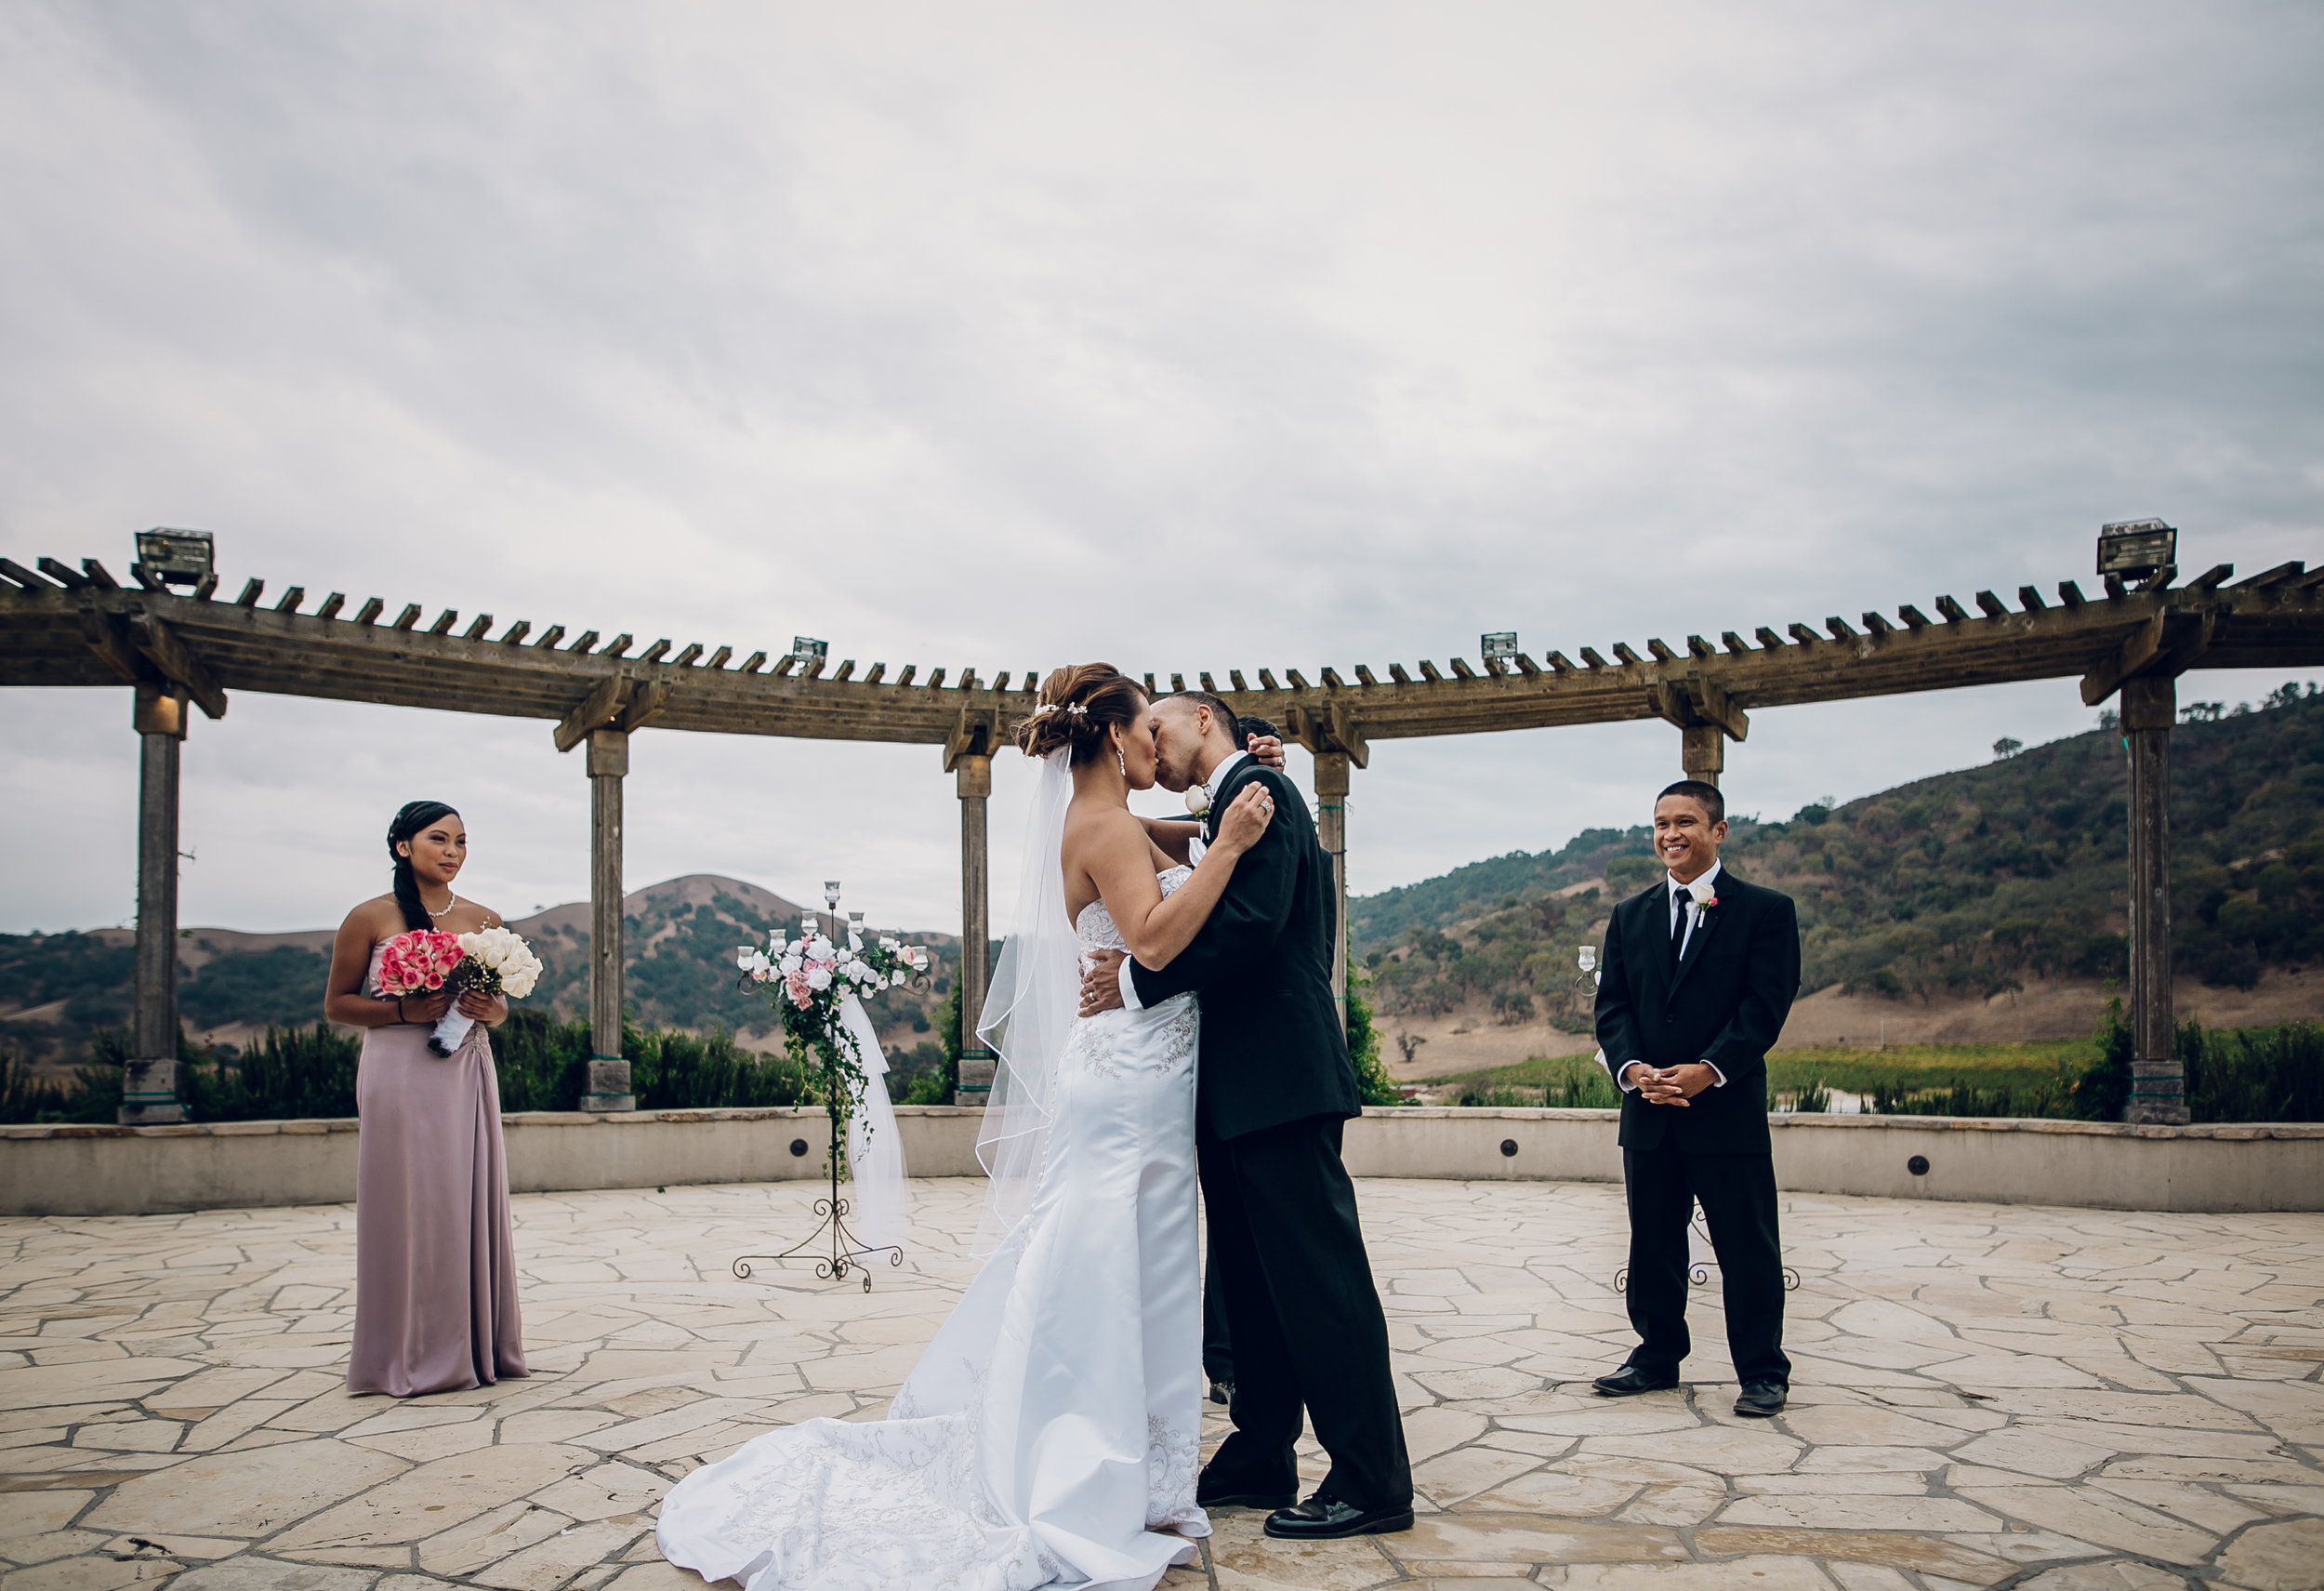 Shiela + Lester's Wedding 9-30-15 685.jpg